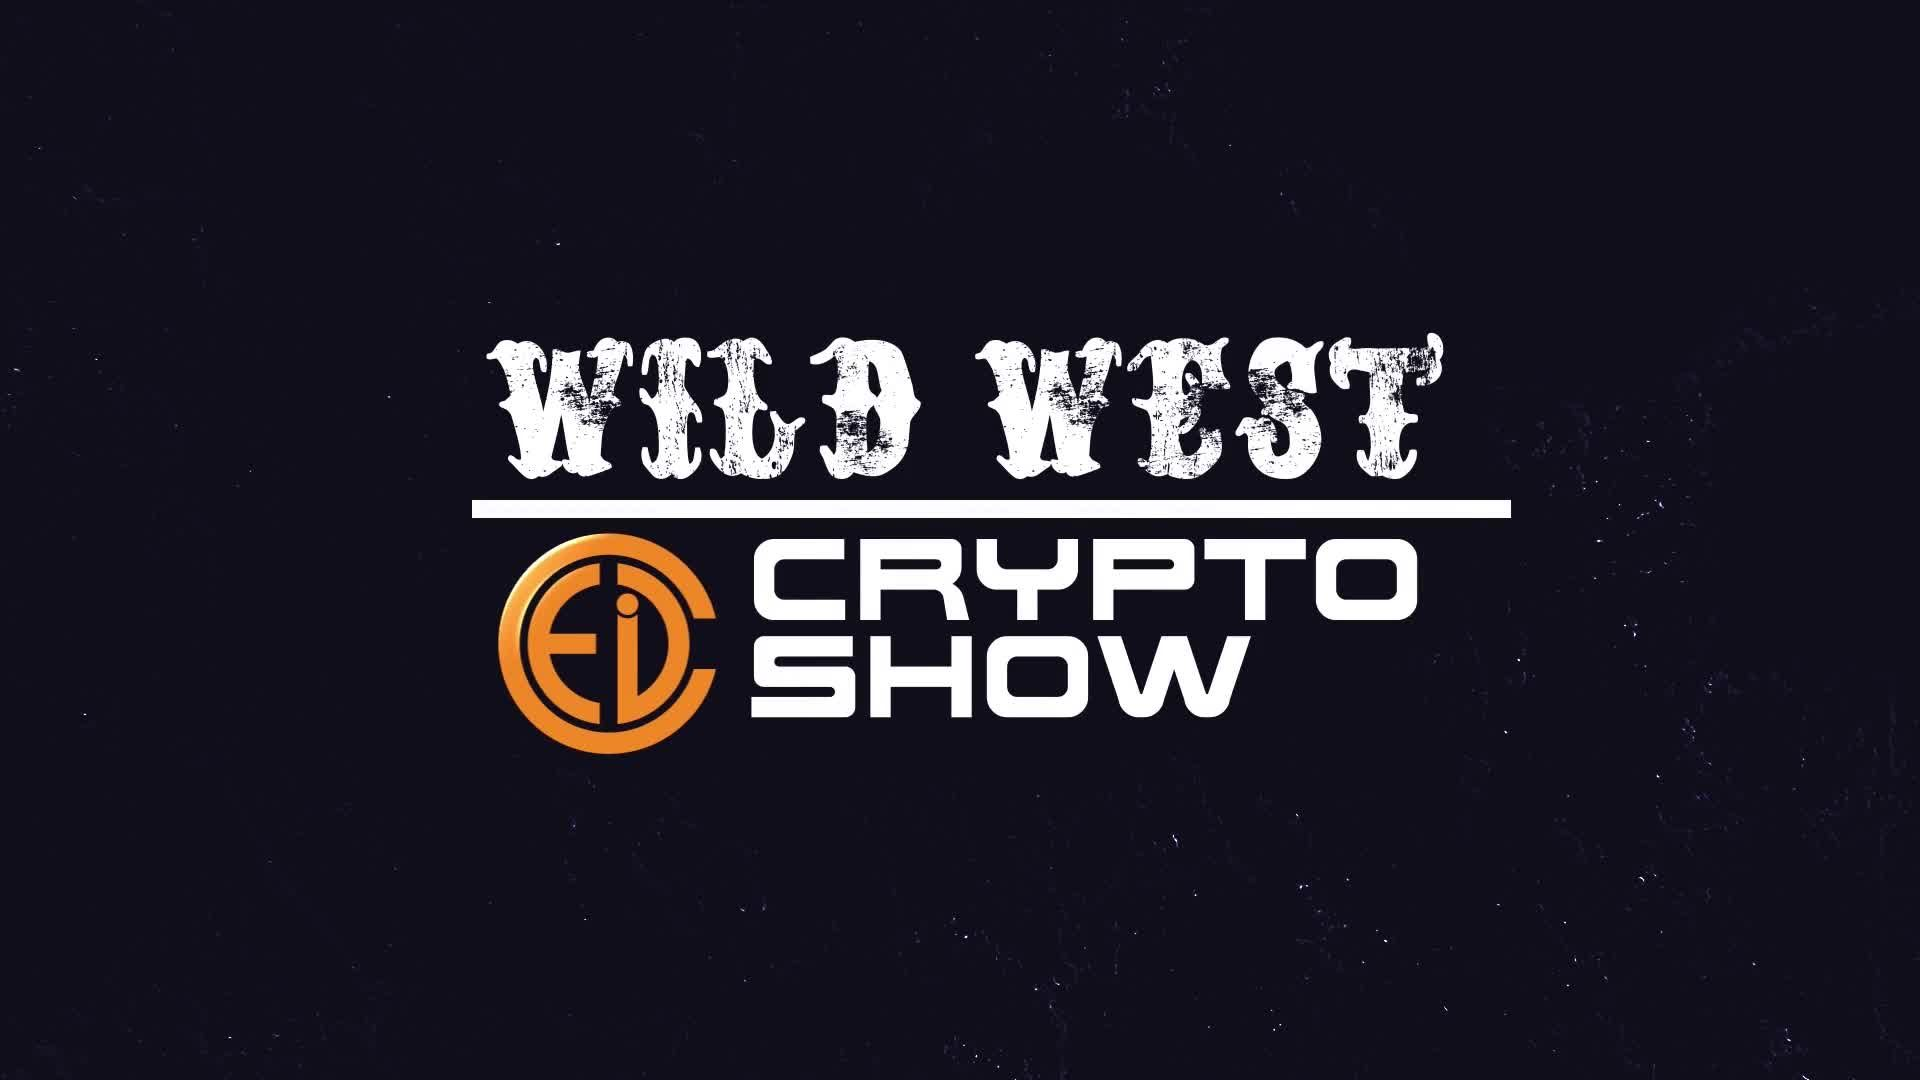 CryptoCurrencyWire Videos-The Wild West Crypto Show The Wild West Crypto Show Preps for Dollar Inflation   CryptoCurrencyWire on The Wild West Crypto Show   Episode 121